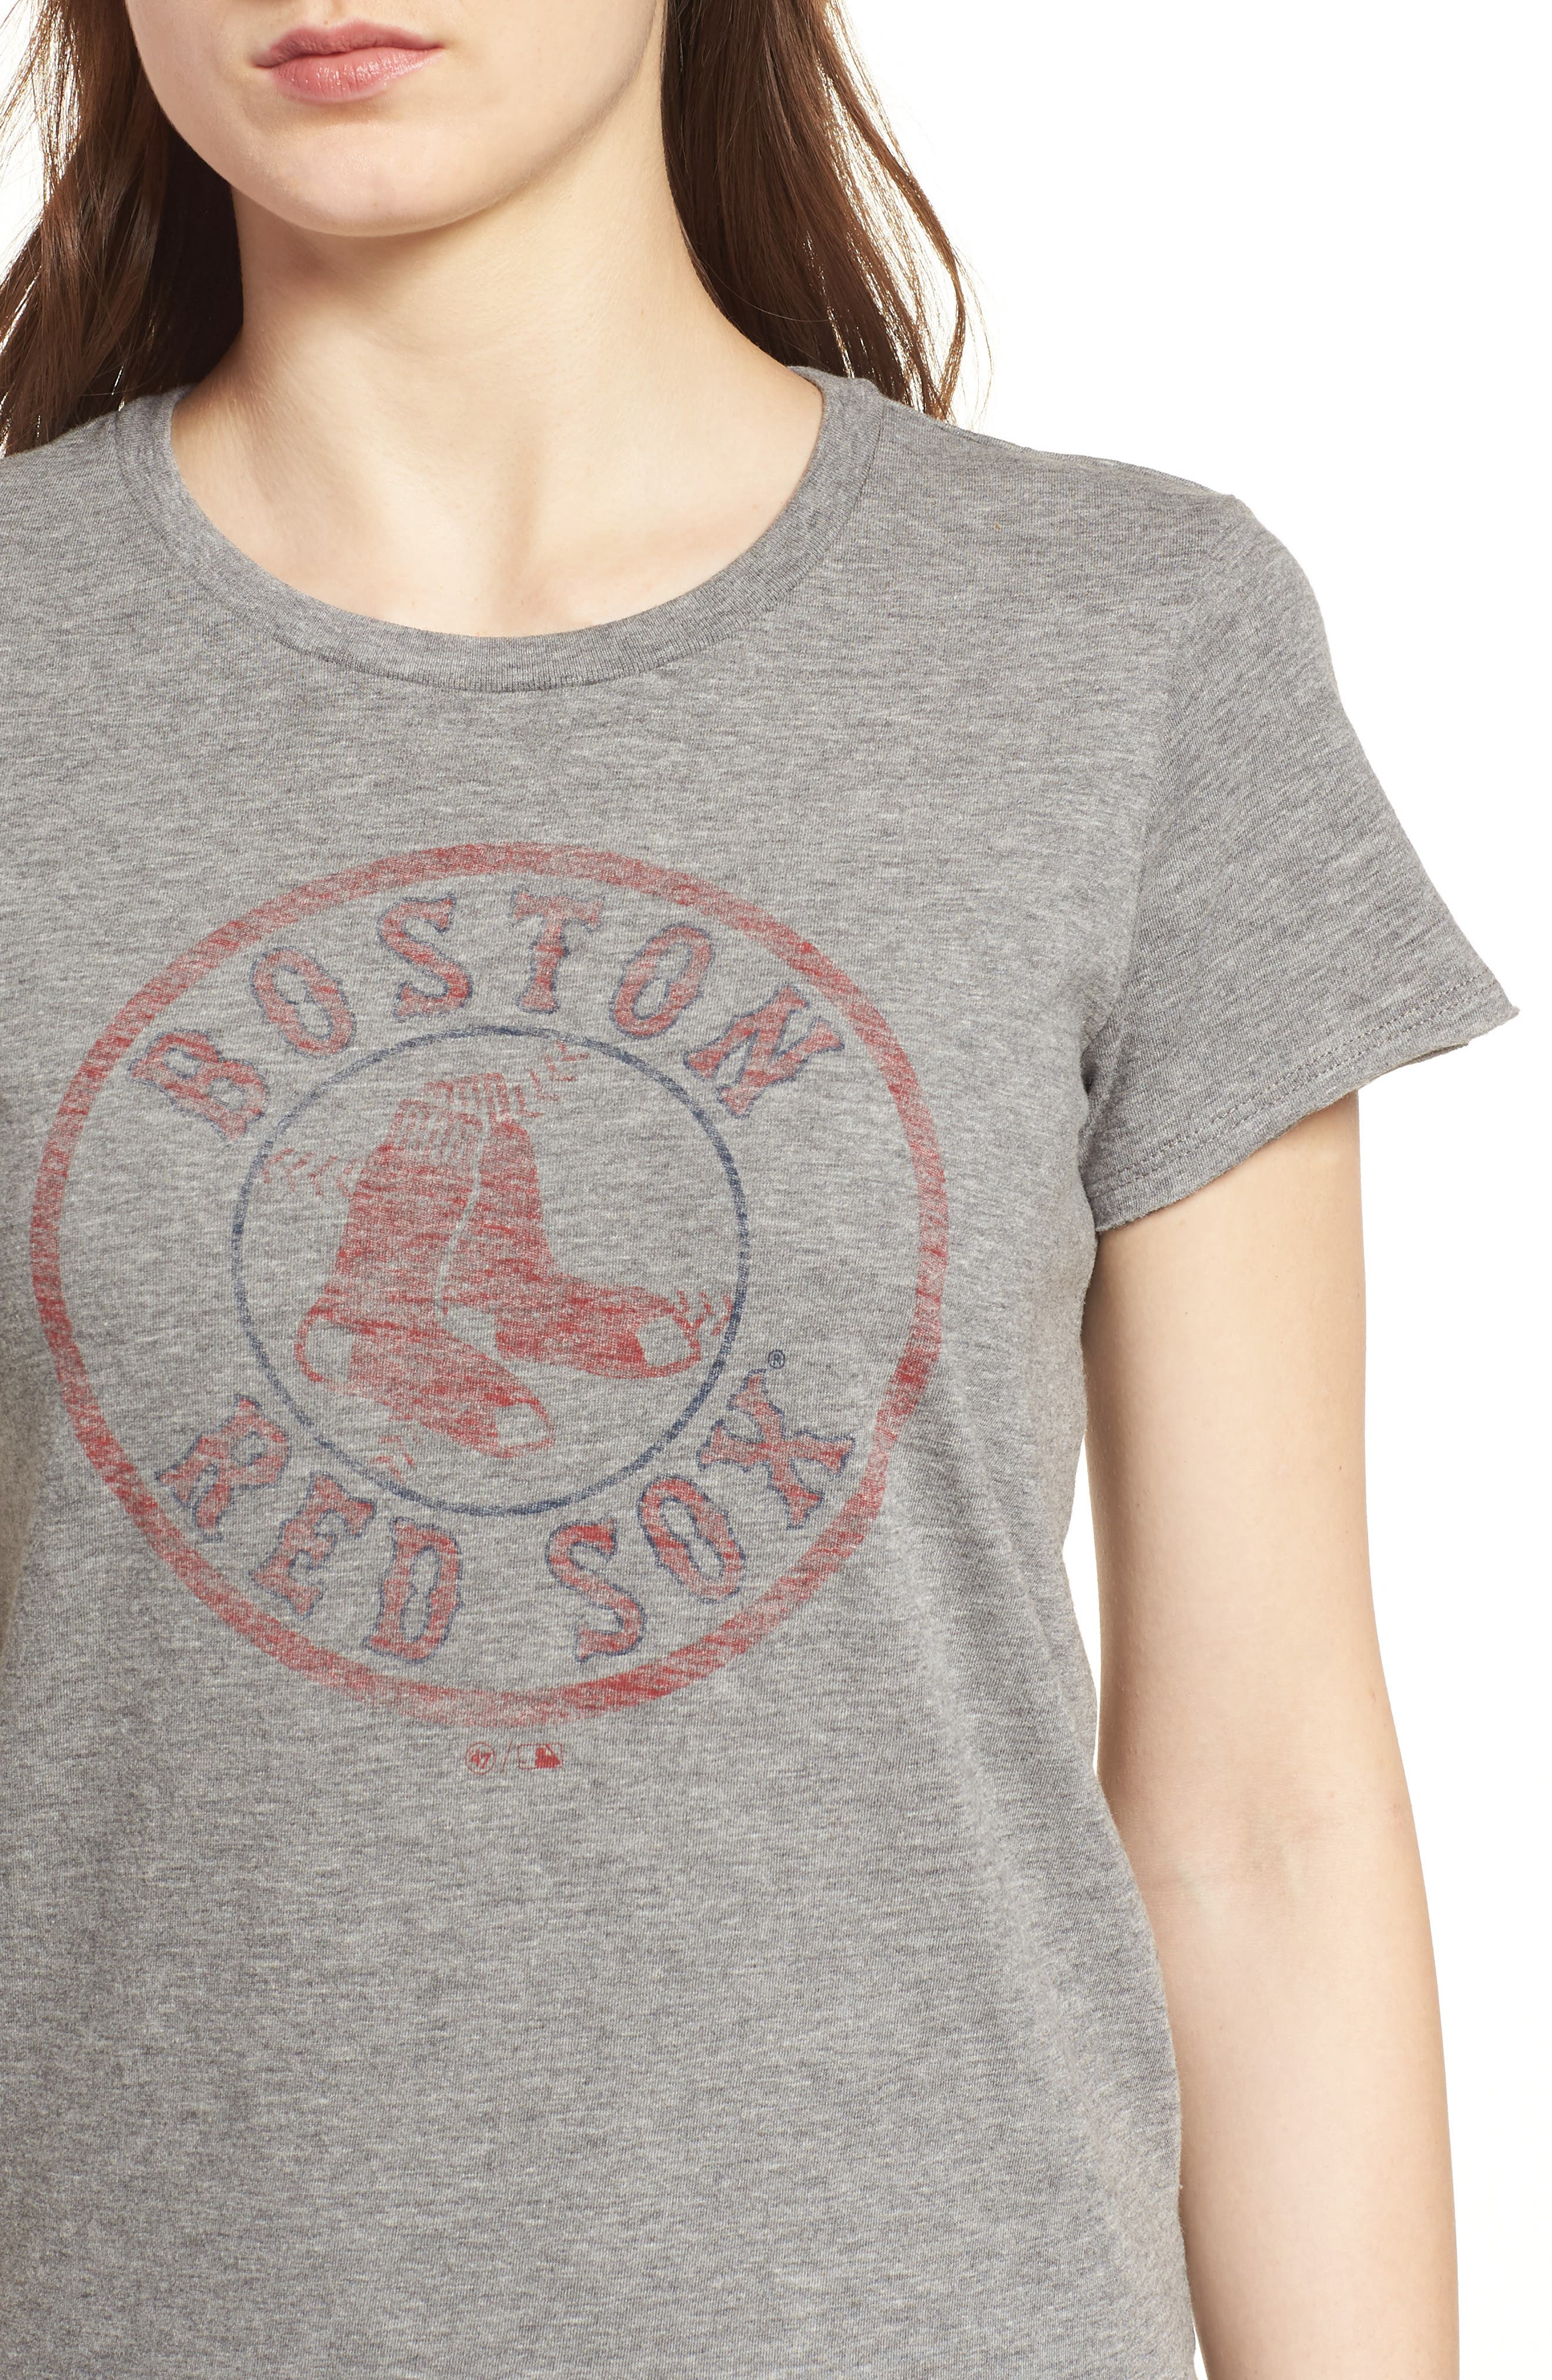 Boston Red Sox Fader Letter Tee,                             Alternate thumbnail 4, color,                             021